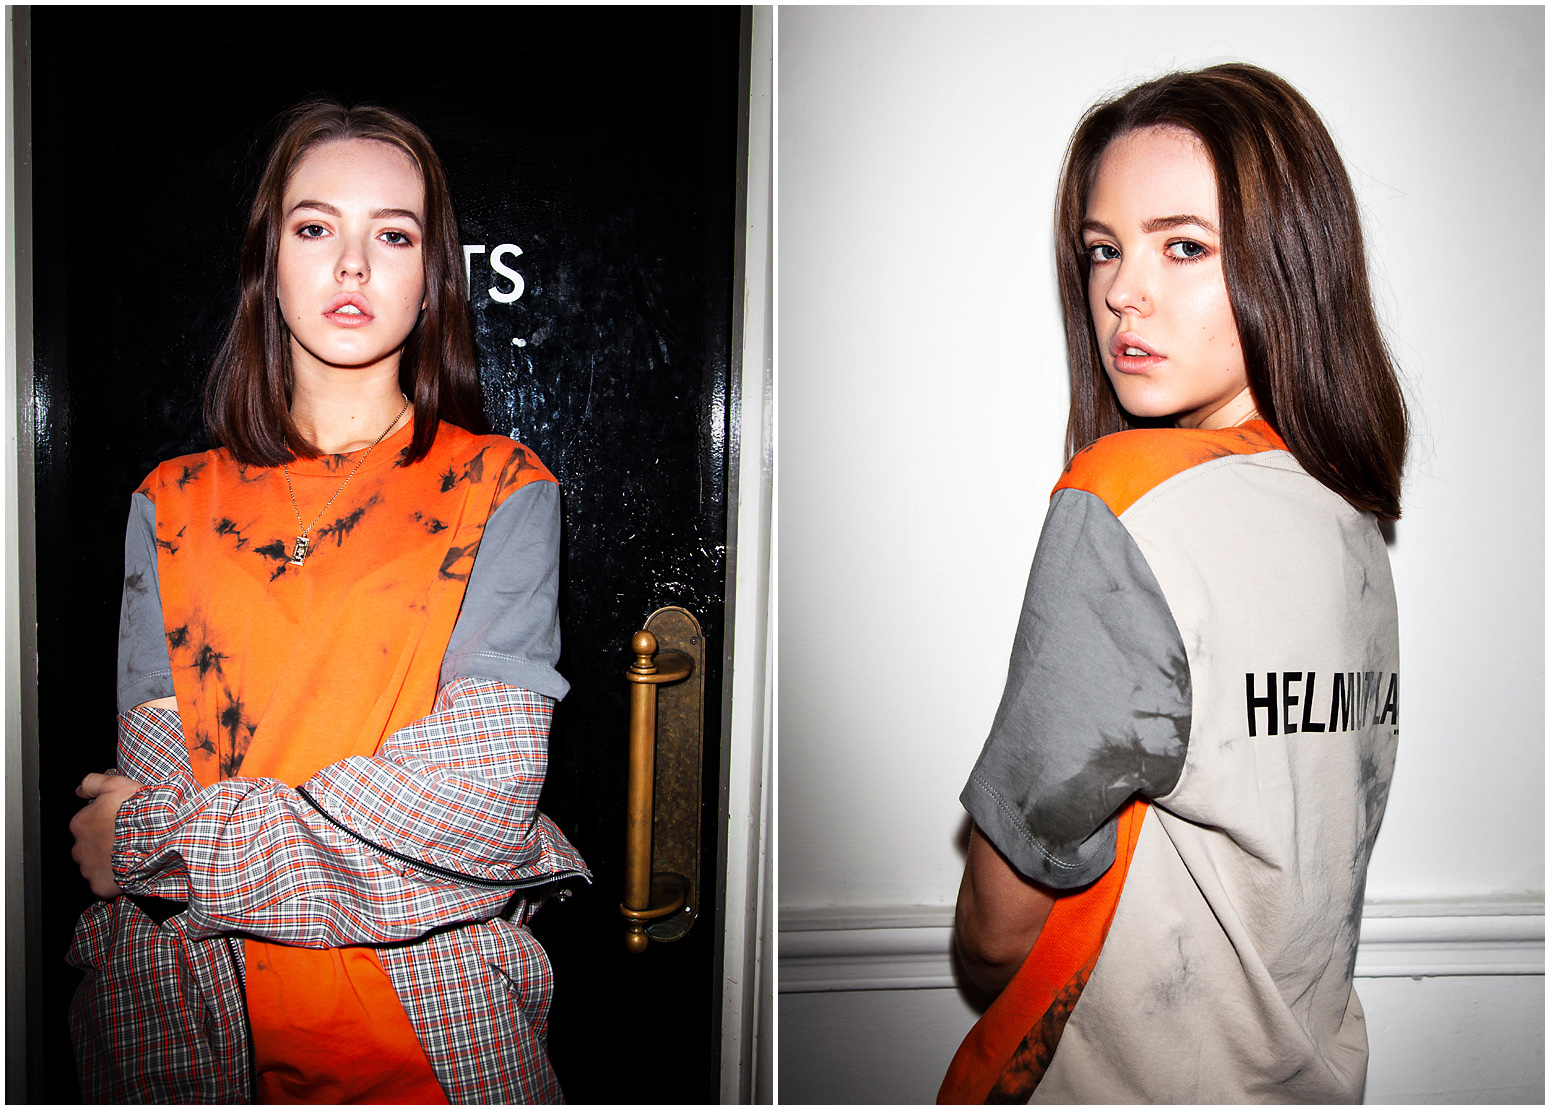 Photography by Kev Foster for Philip Browne_Helmut Lang SS19_19.jpg